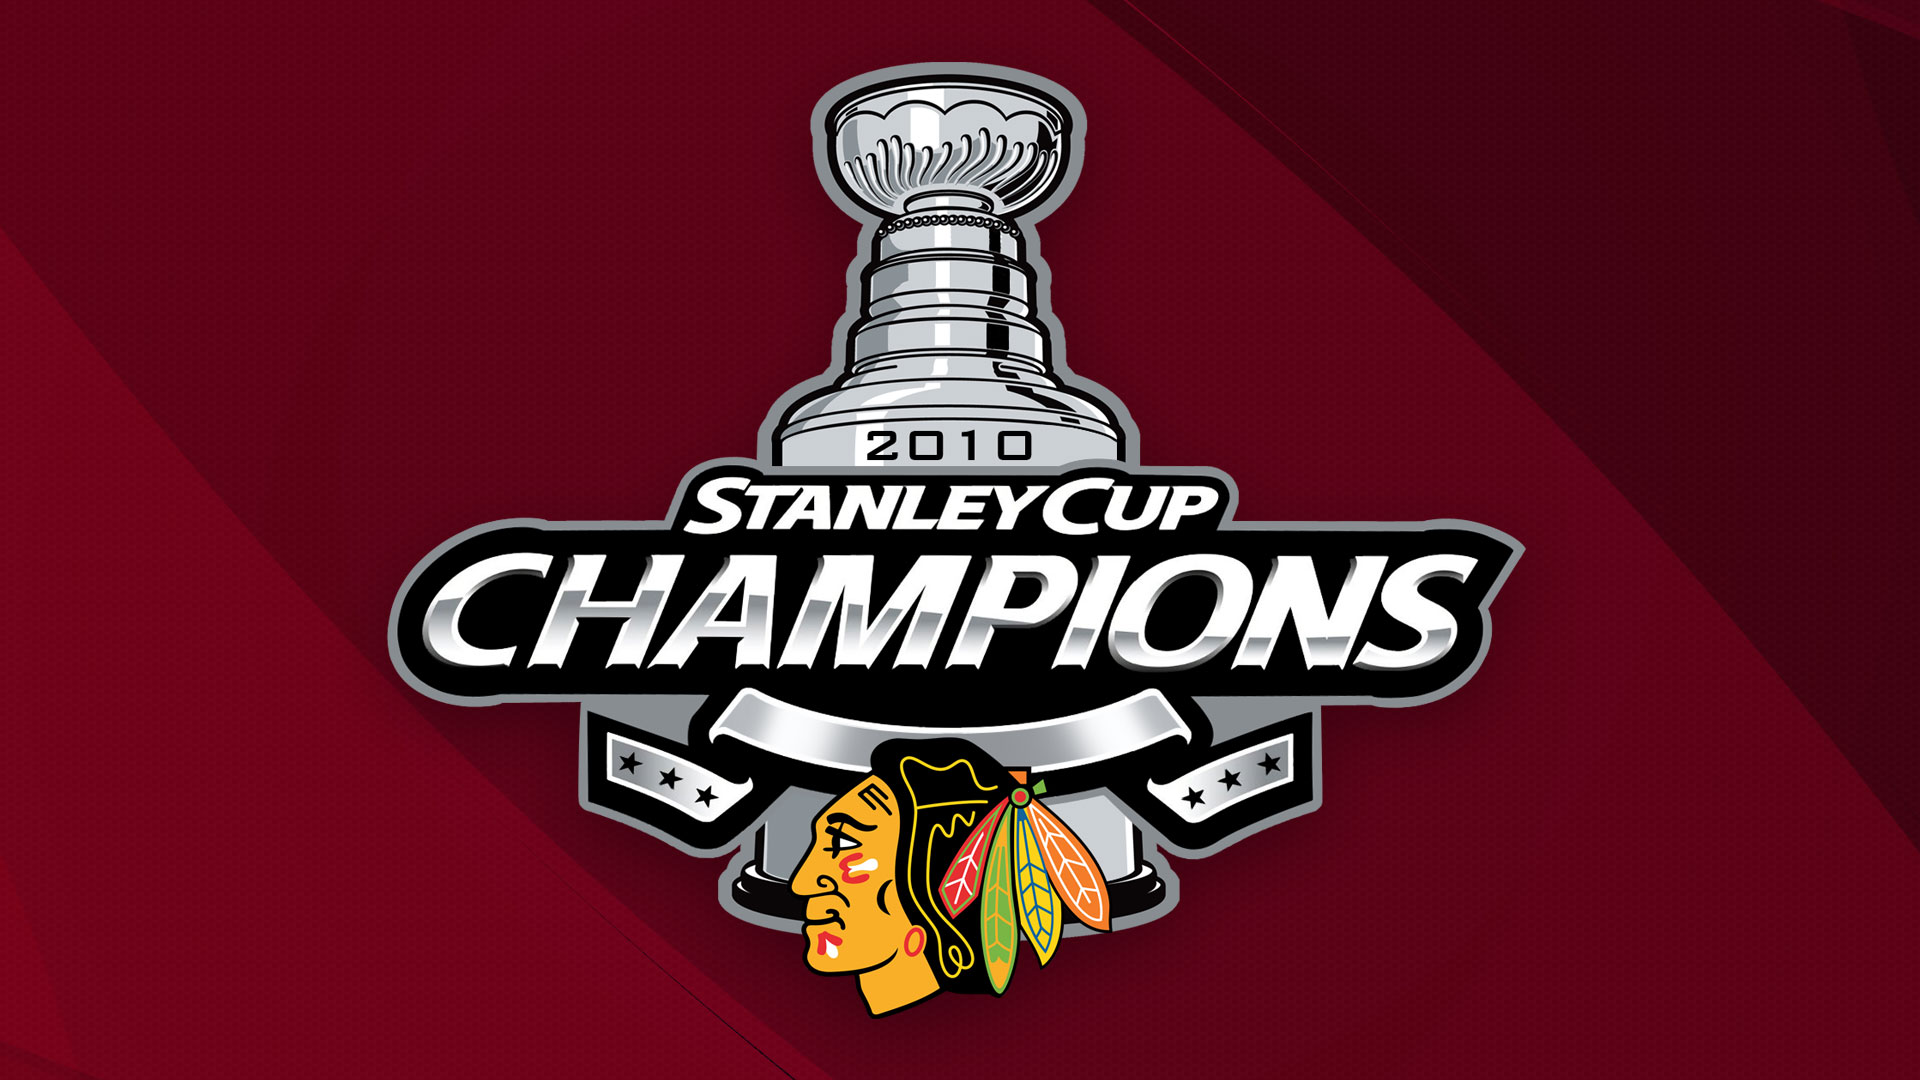 Chicago Blackhawks Stanley Cup Champions 1920x1080